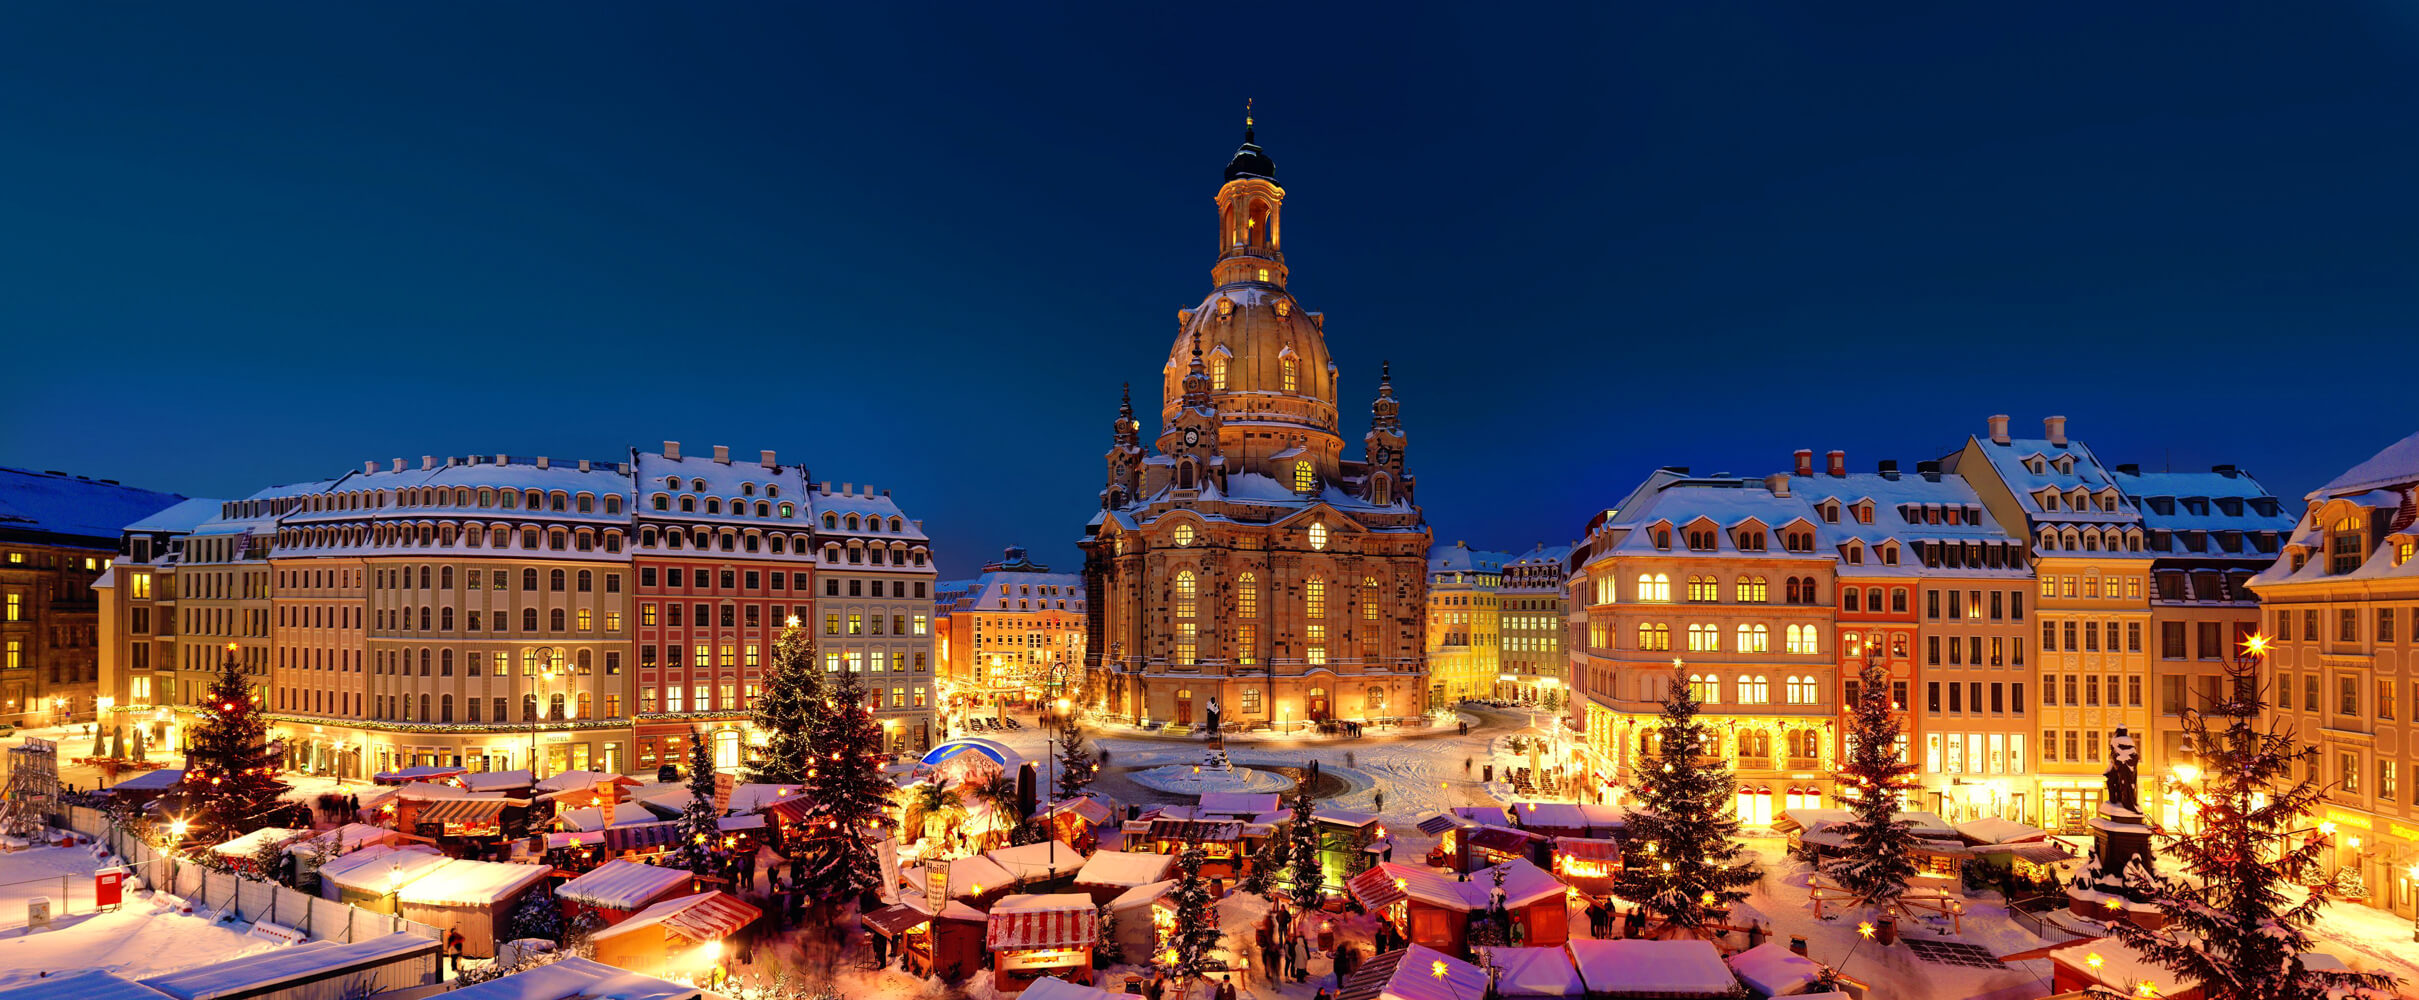 advent in dresden nussknacker frauenkirche. Black Bedroom Furniture Sets. Home Design Ideas